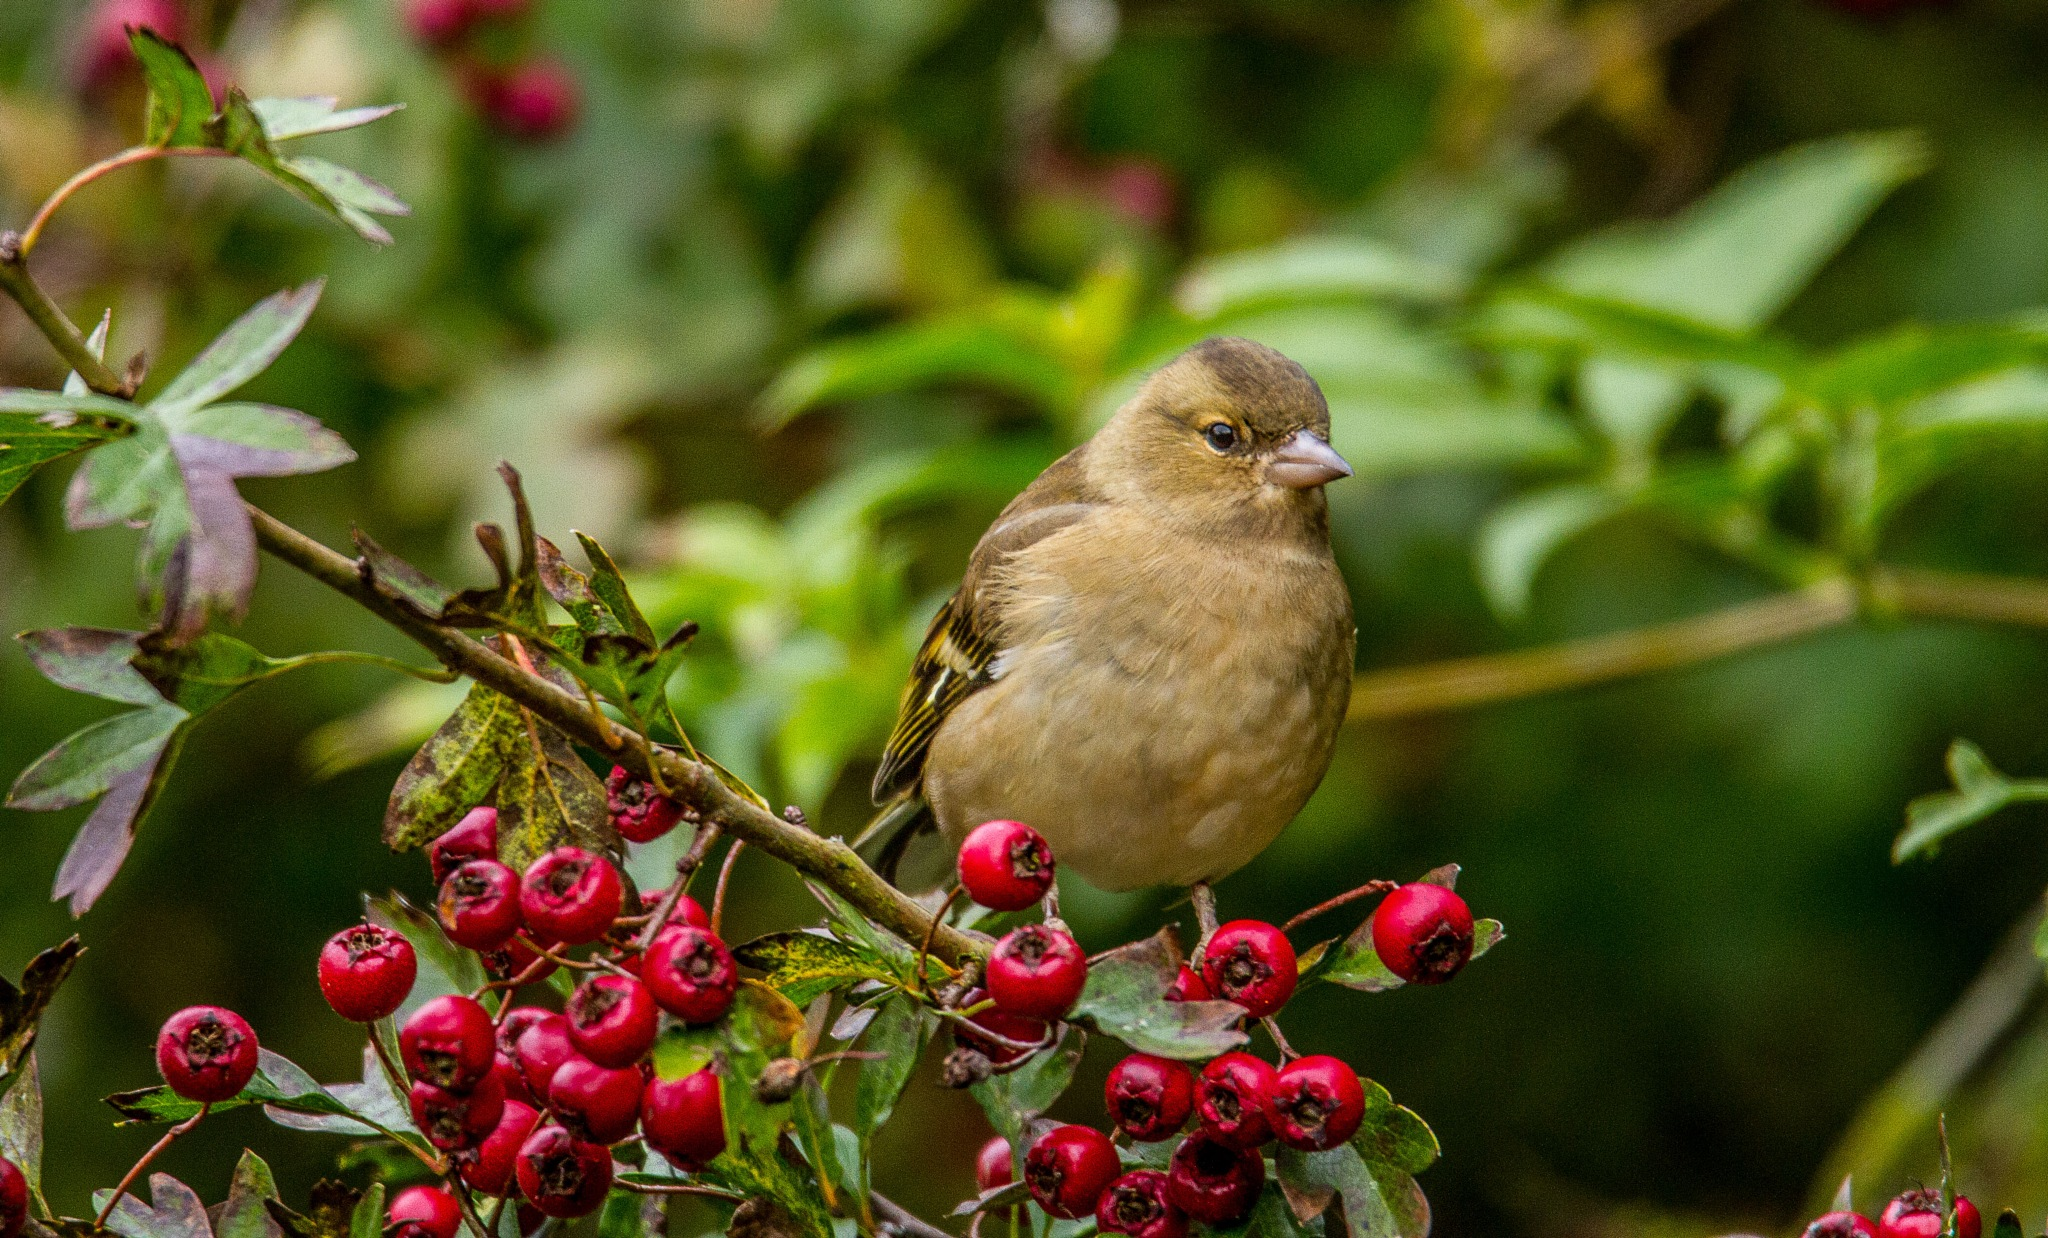 Amongst the berries by garry-chisholm1